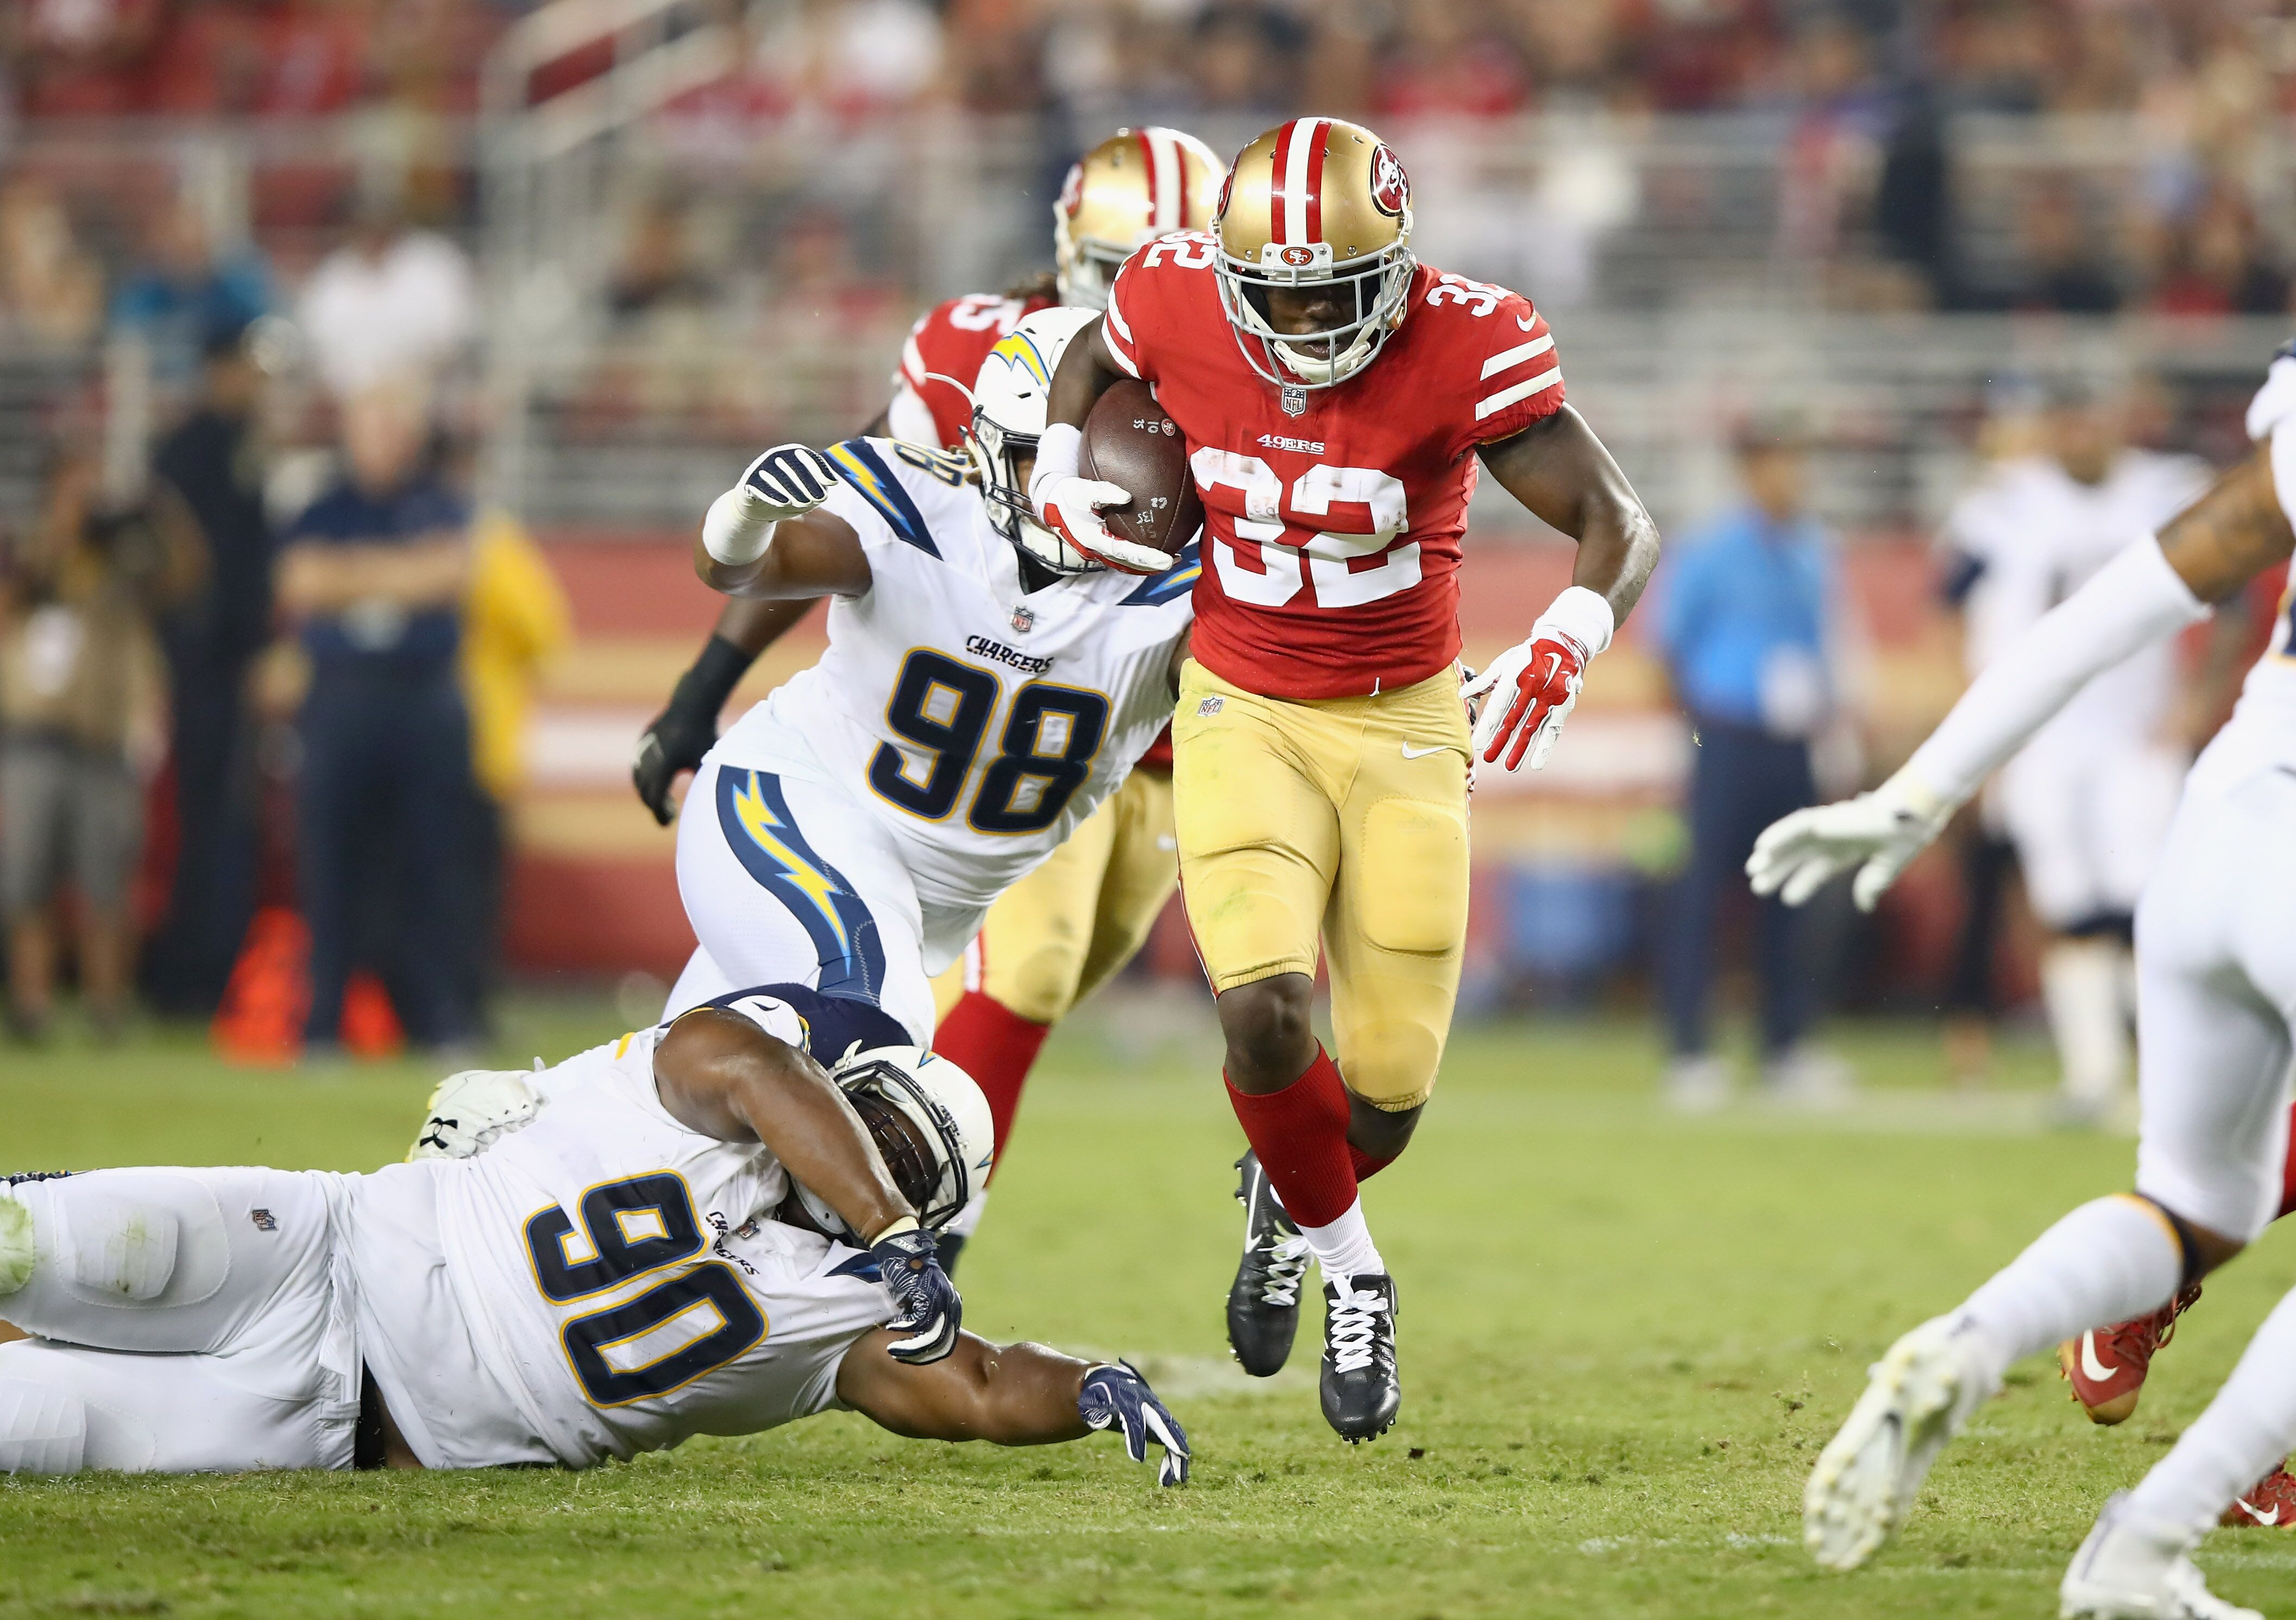 841395182-los-angeles-chargers-v-san-francisco-49ers.jpg